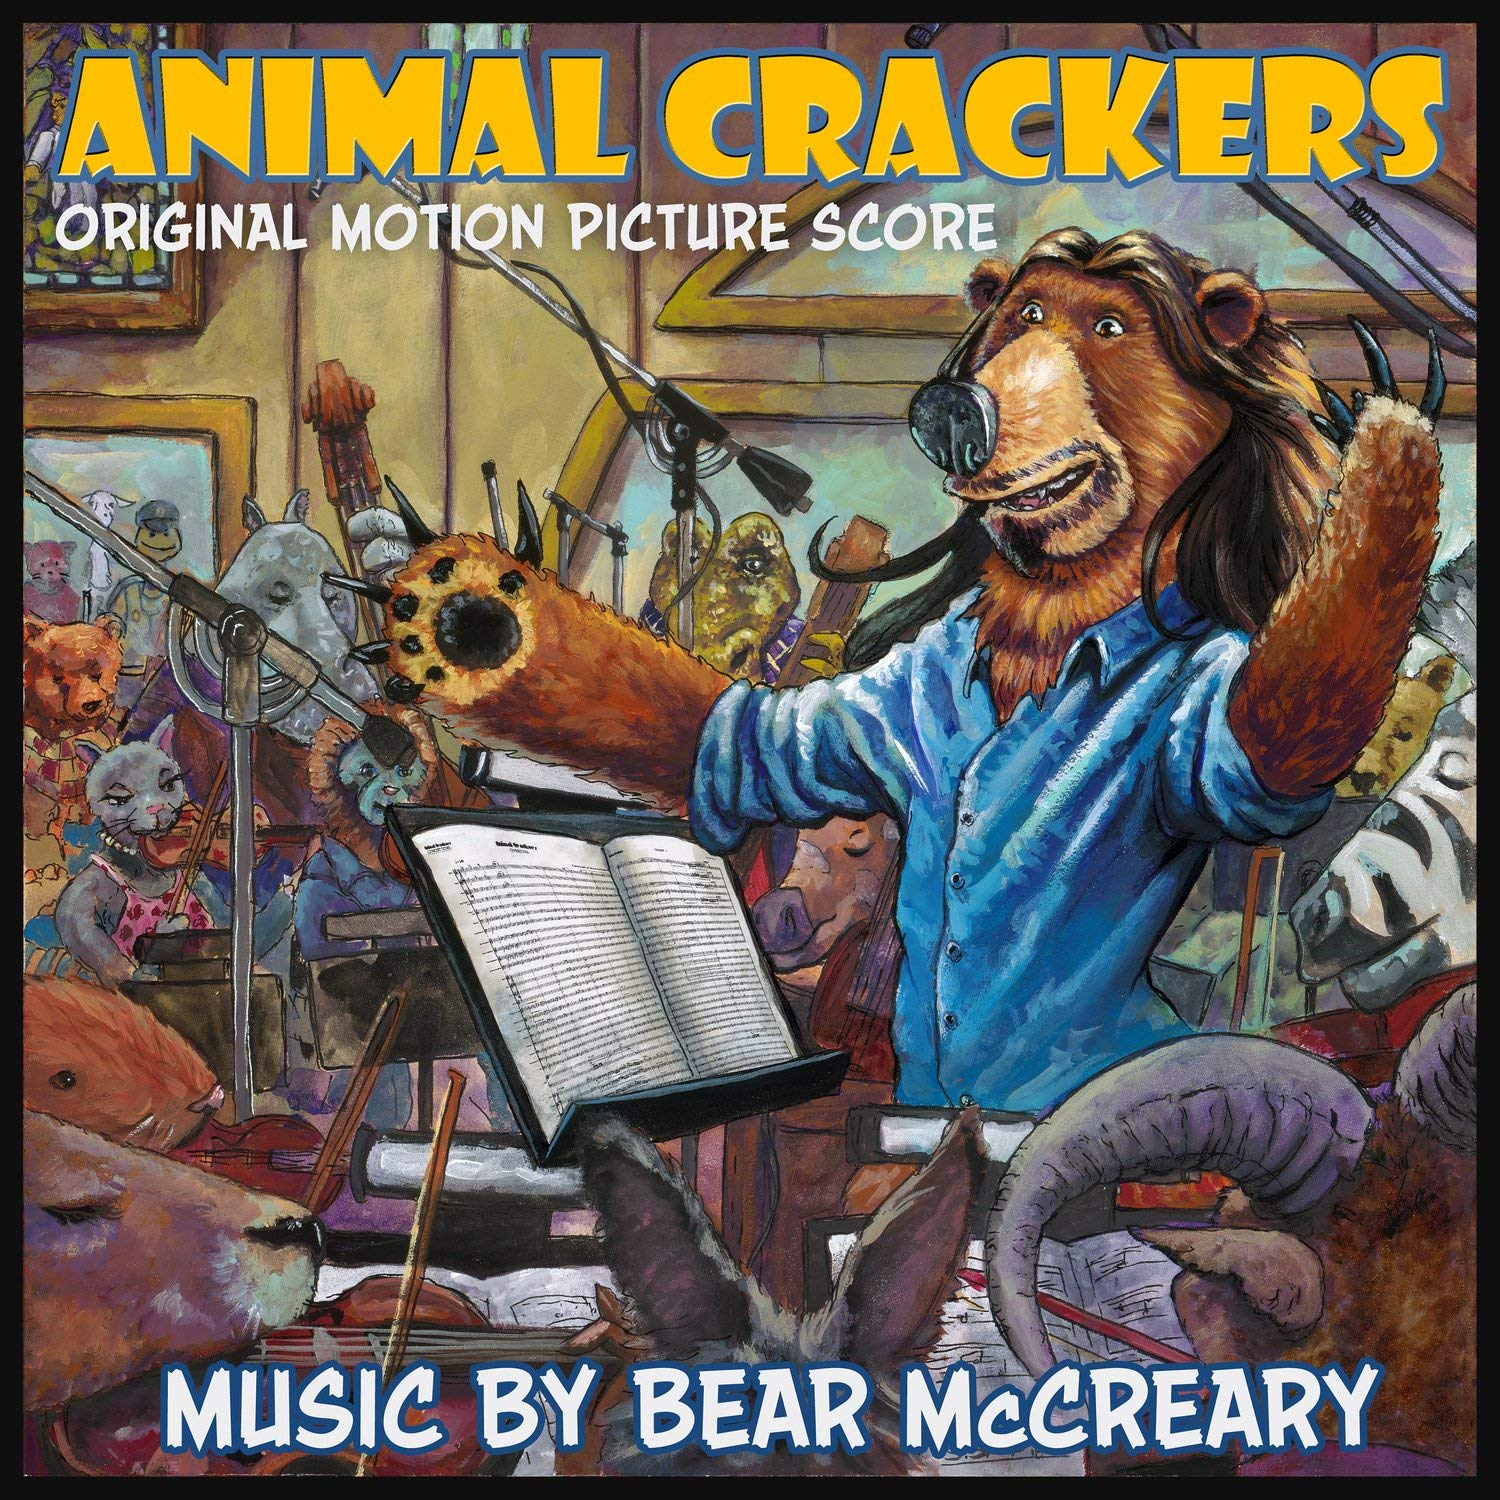 BEAR MCCREARY - ANIMAL CRACKERS (ORIGINAL MOTION PICTURE SOUNDTR